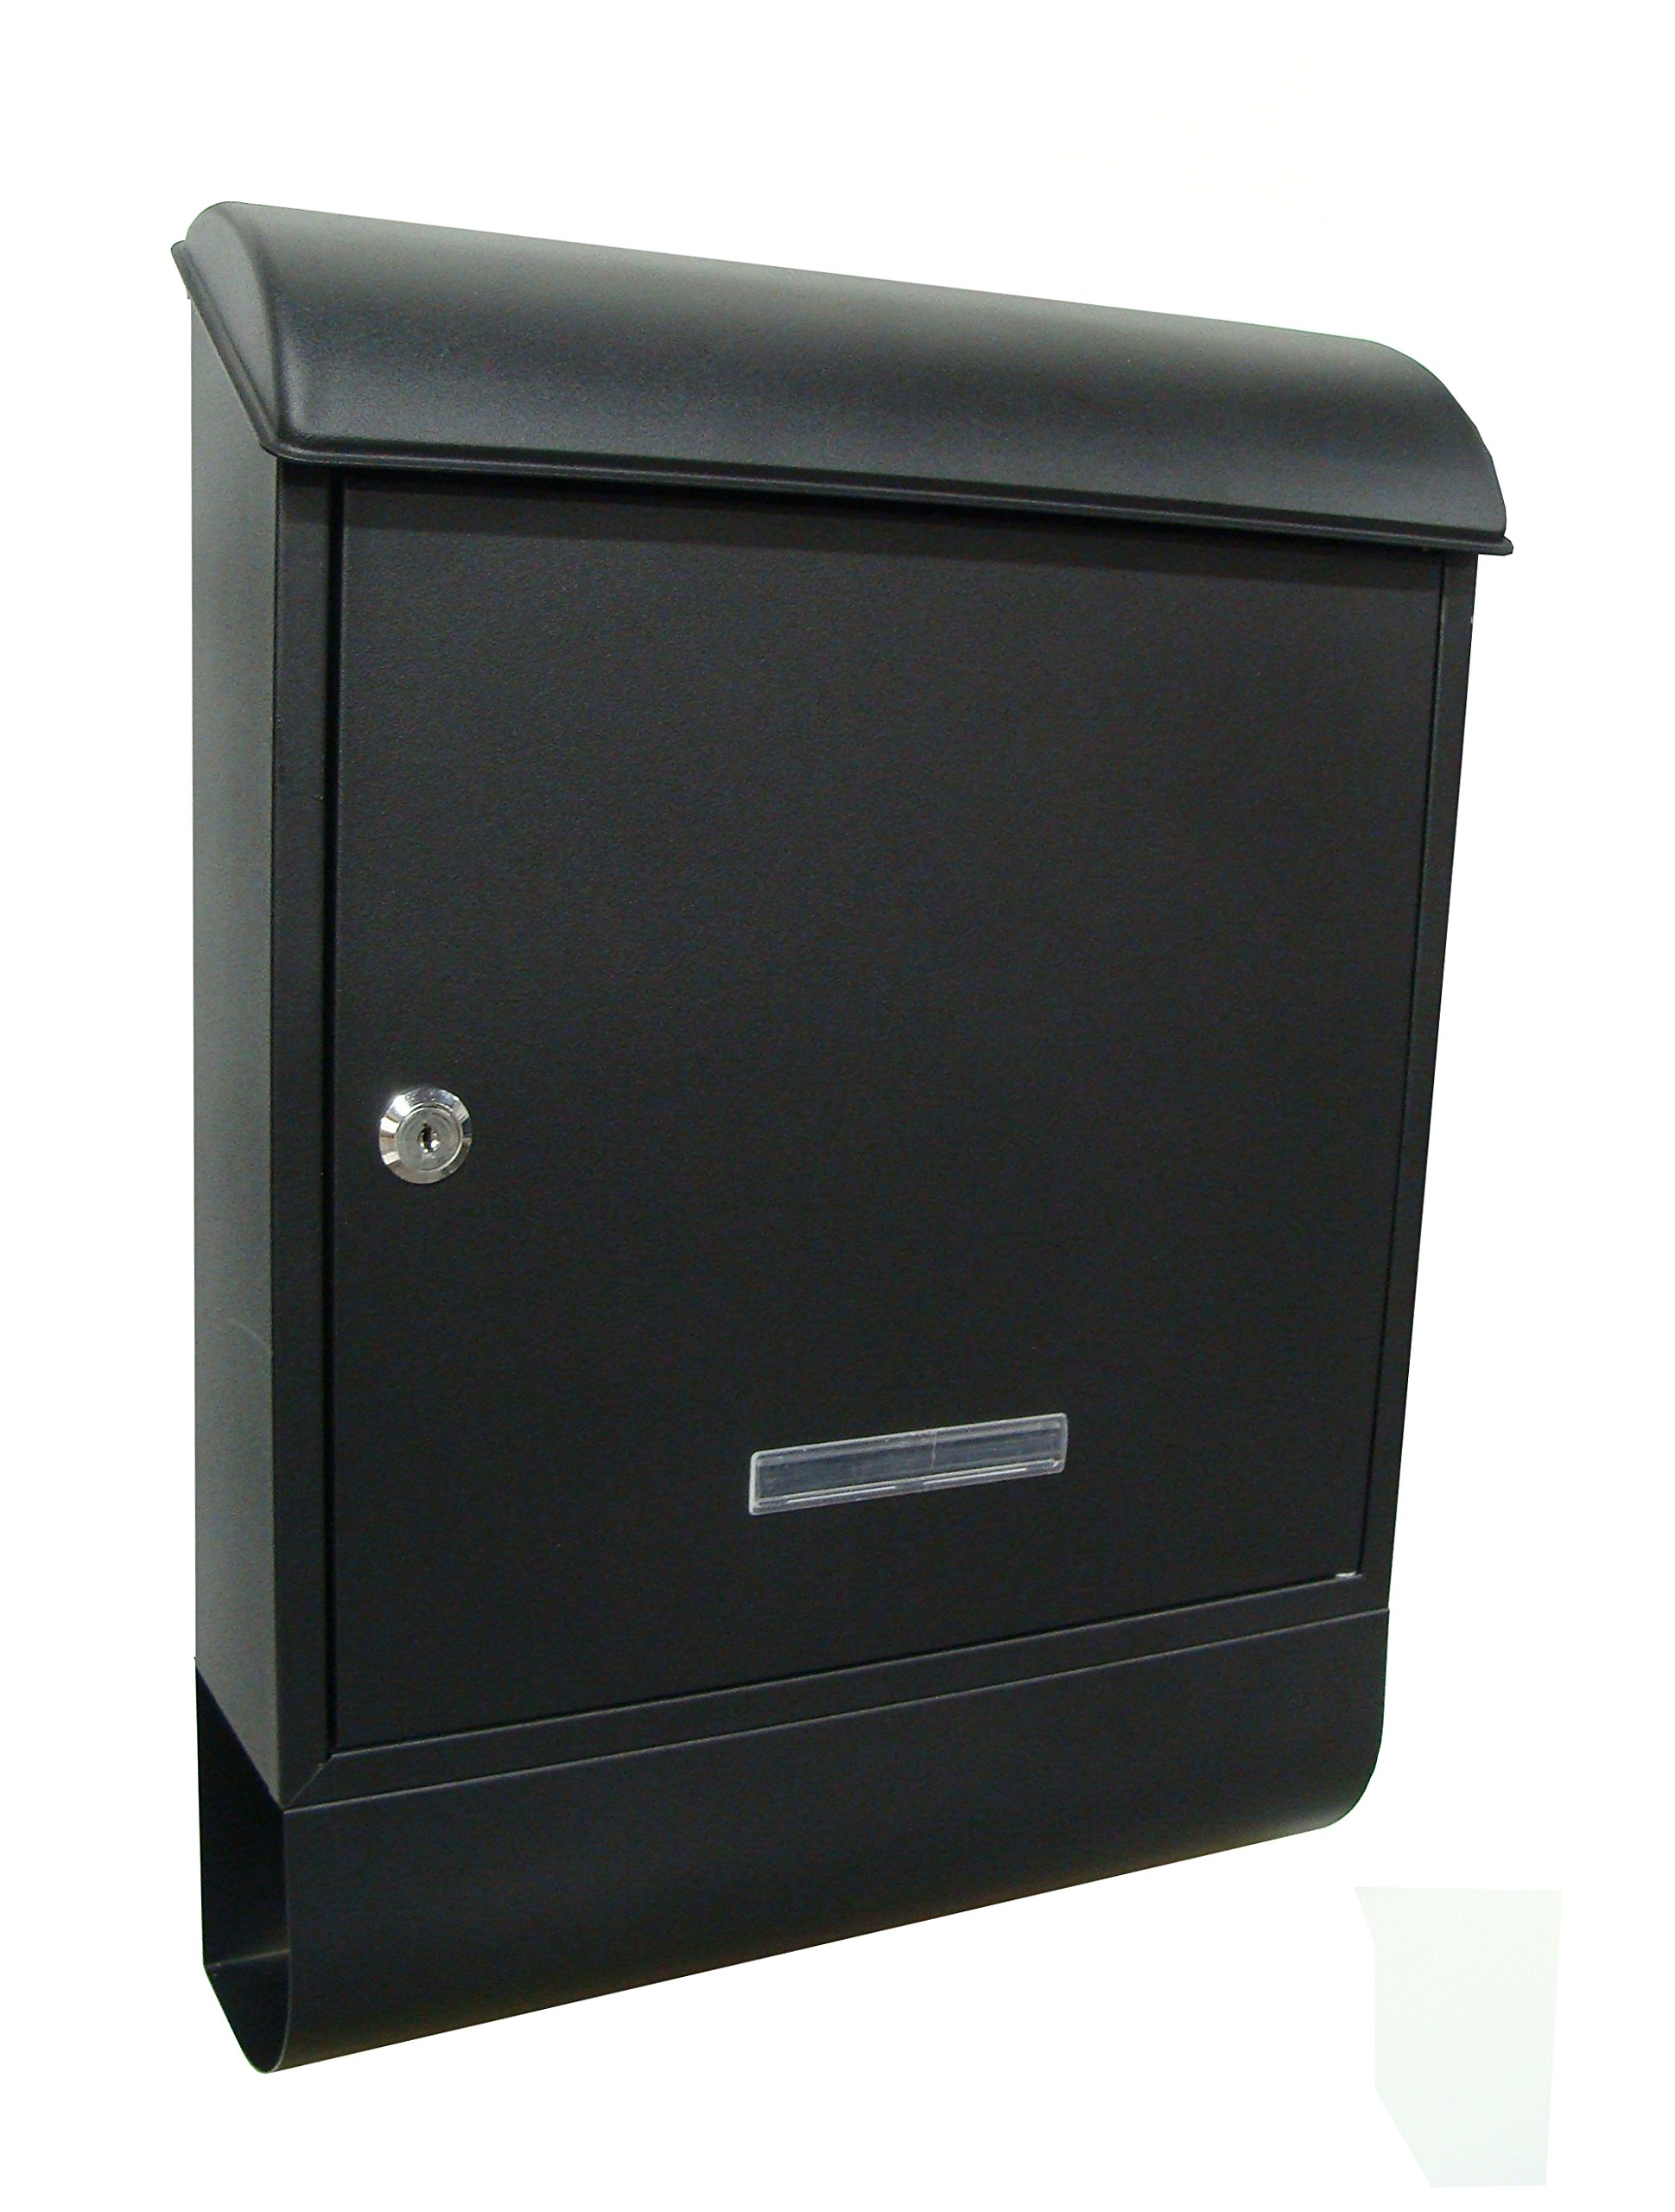 Fine Art Lighting Locked Mailbox with Newpaper Holder, 14.5 by 19.5 by 4.75-Inch, Includes 2 Keys